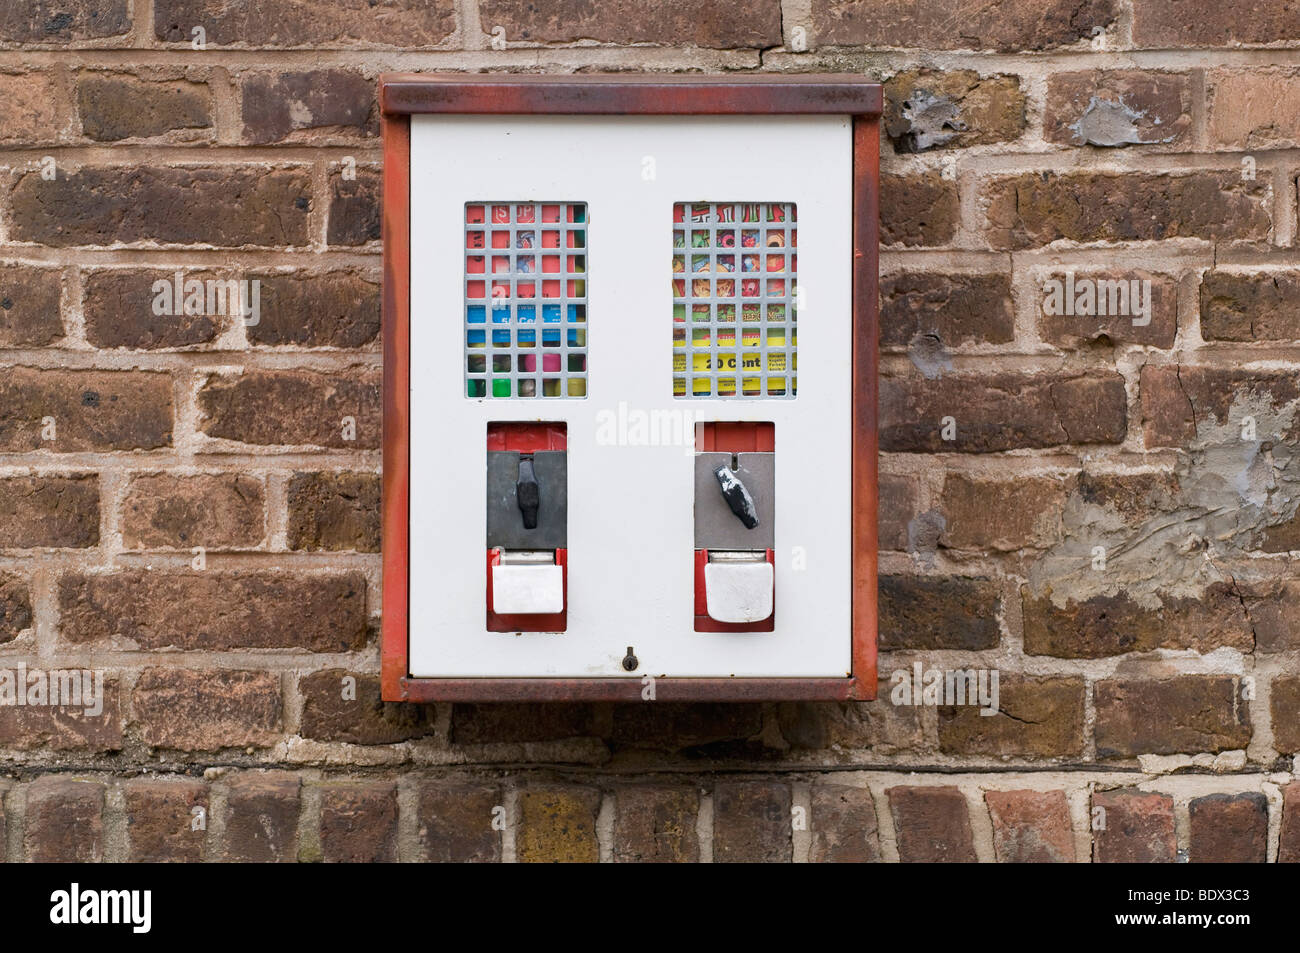 Toy machine and gumball machine on an old brick wall - Stock Image